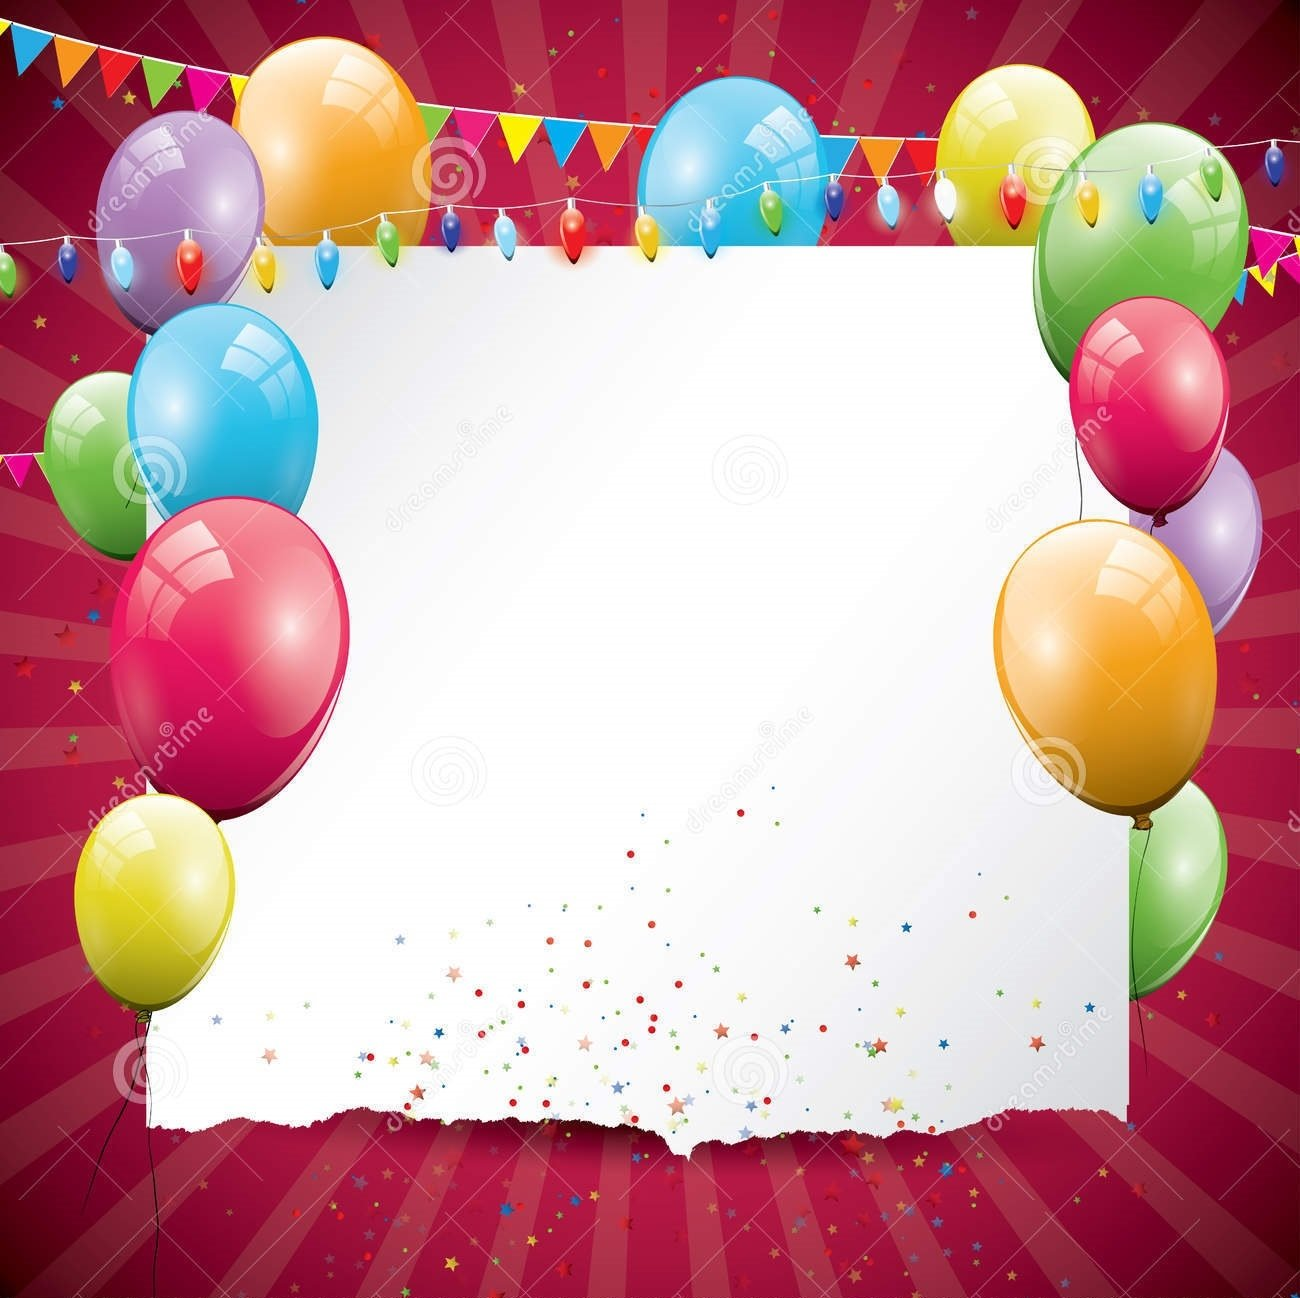 Free Download Birthday Background Images Hd 1080p Download